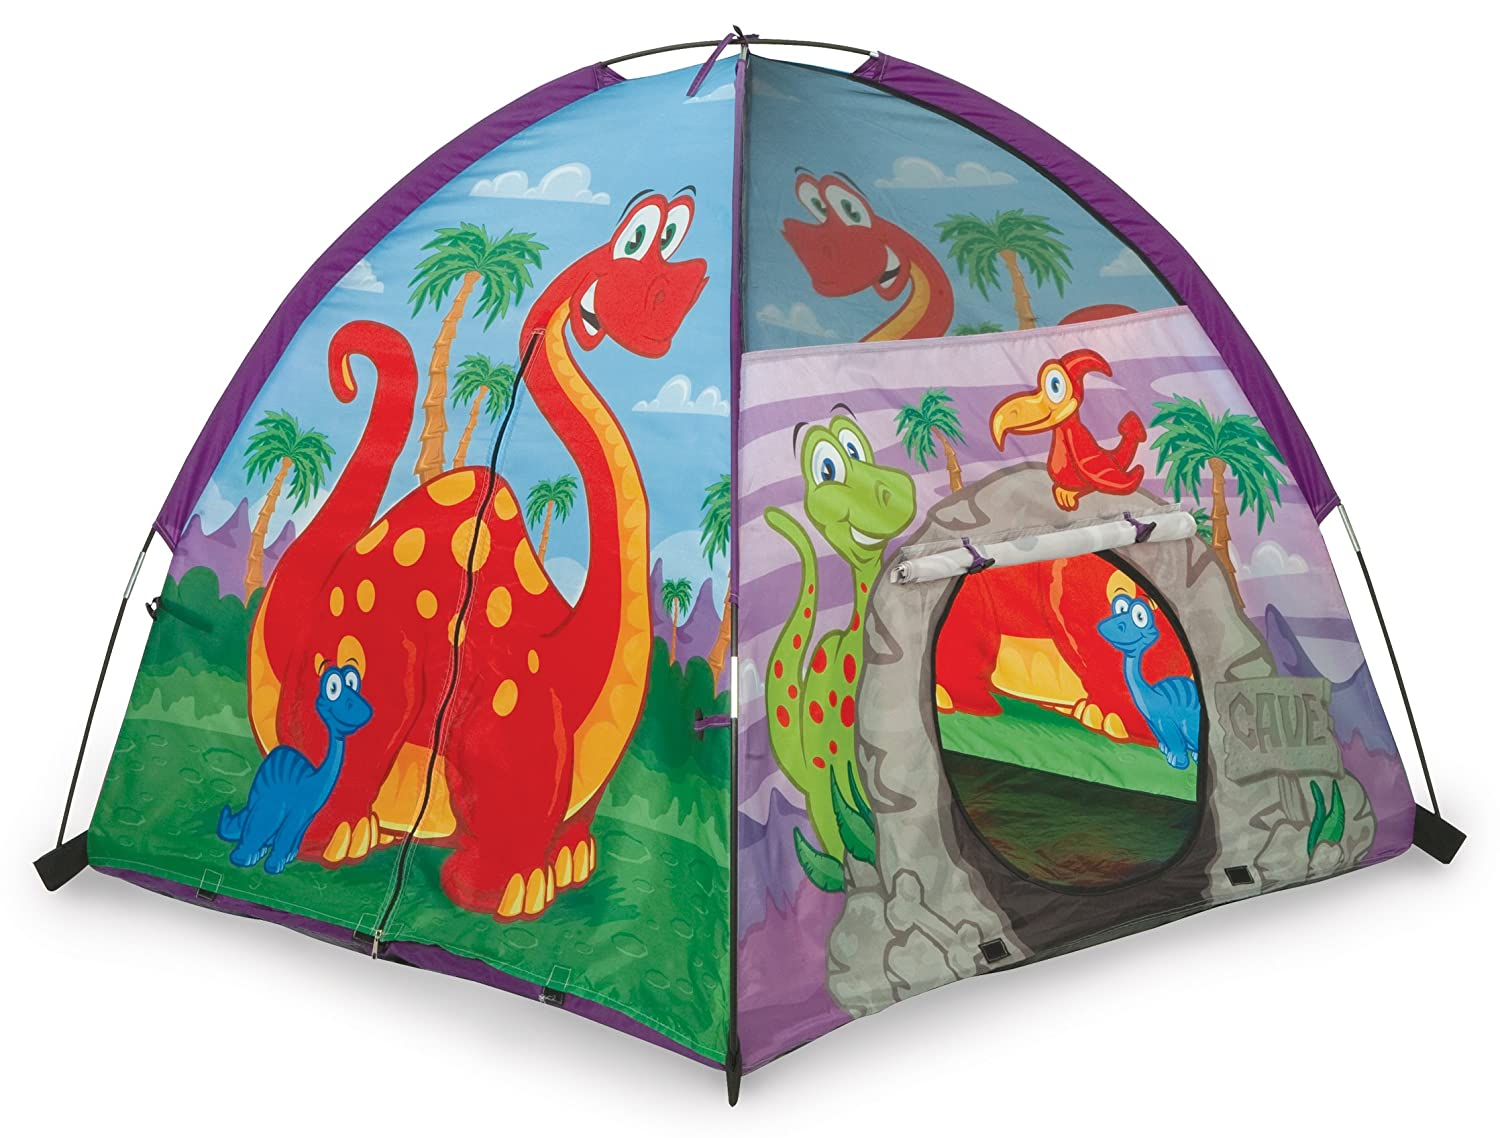 Pacific Play Tents Dinosaur Tent